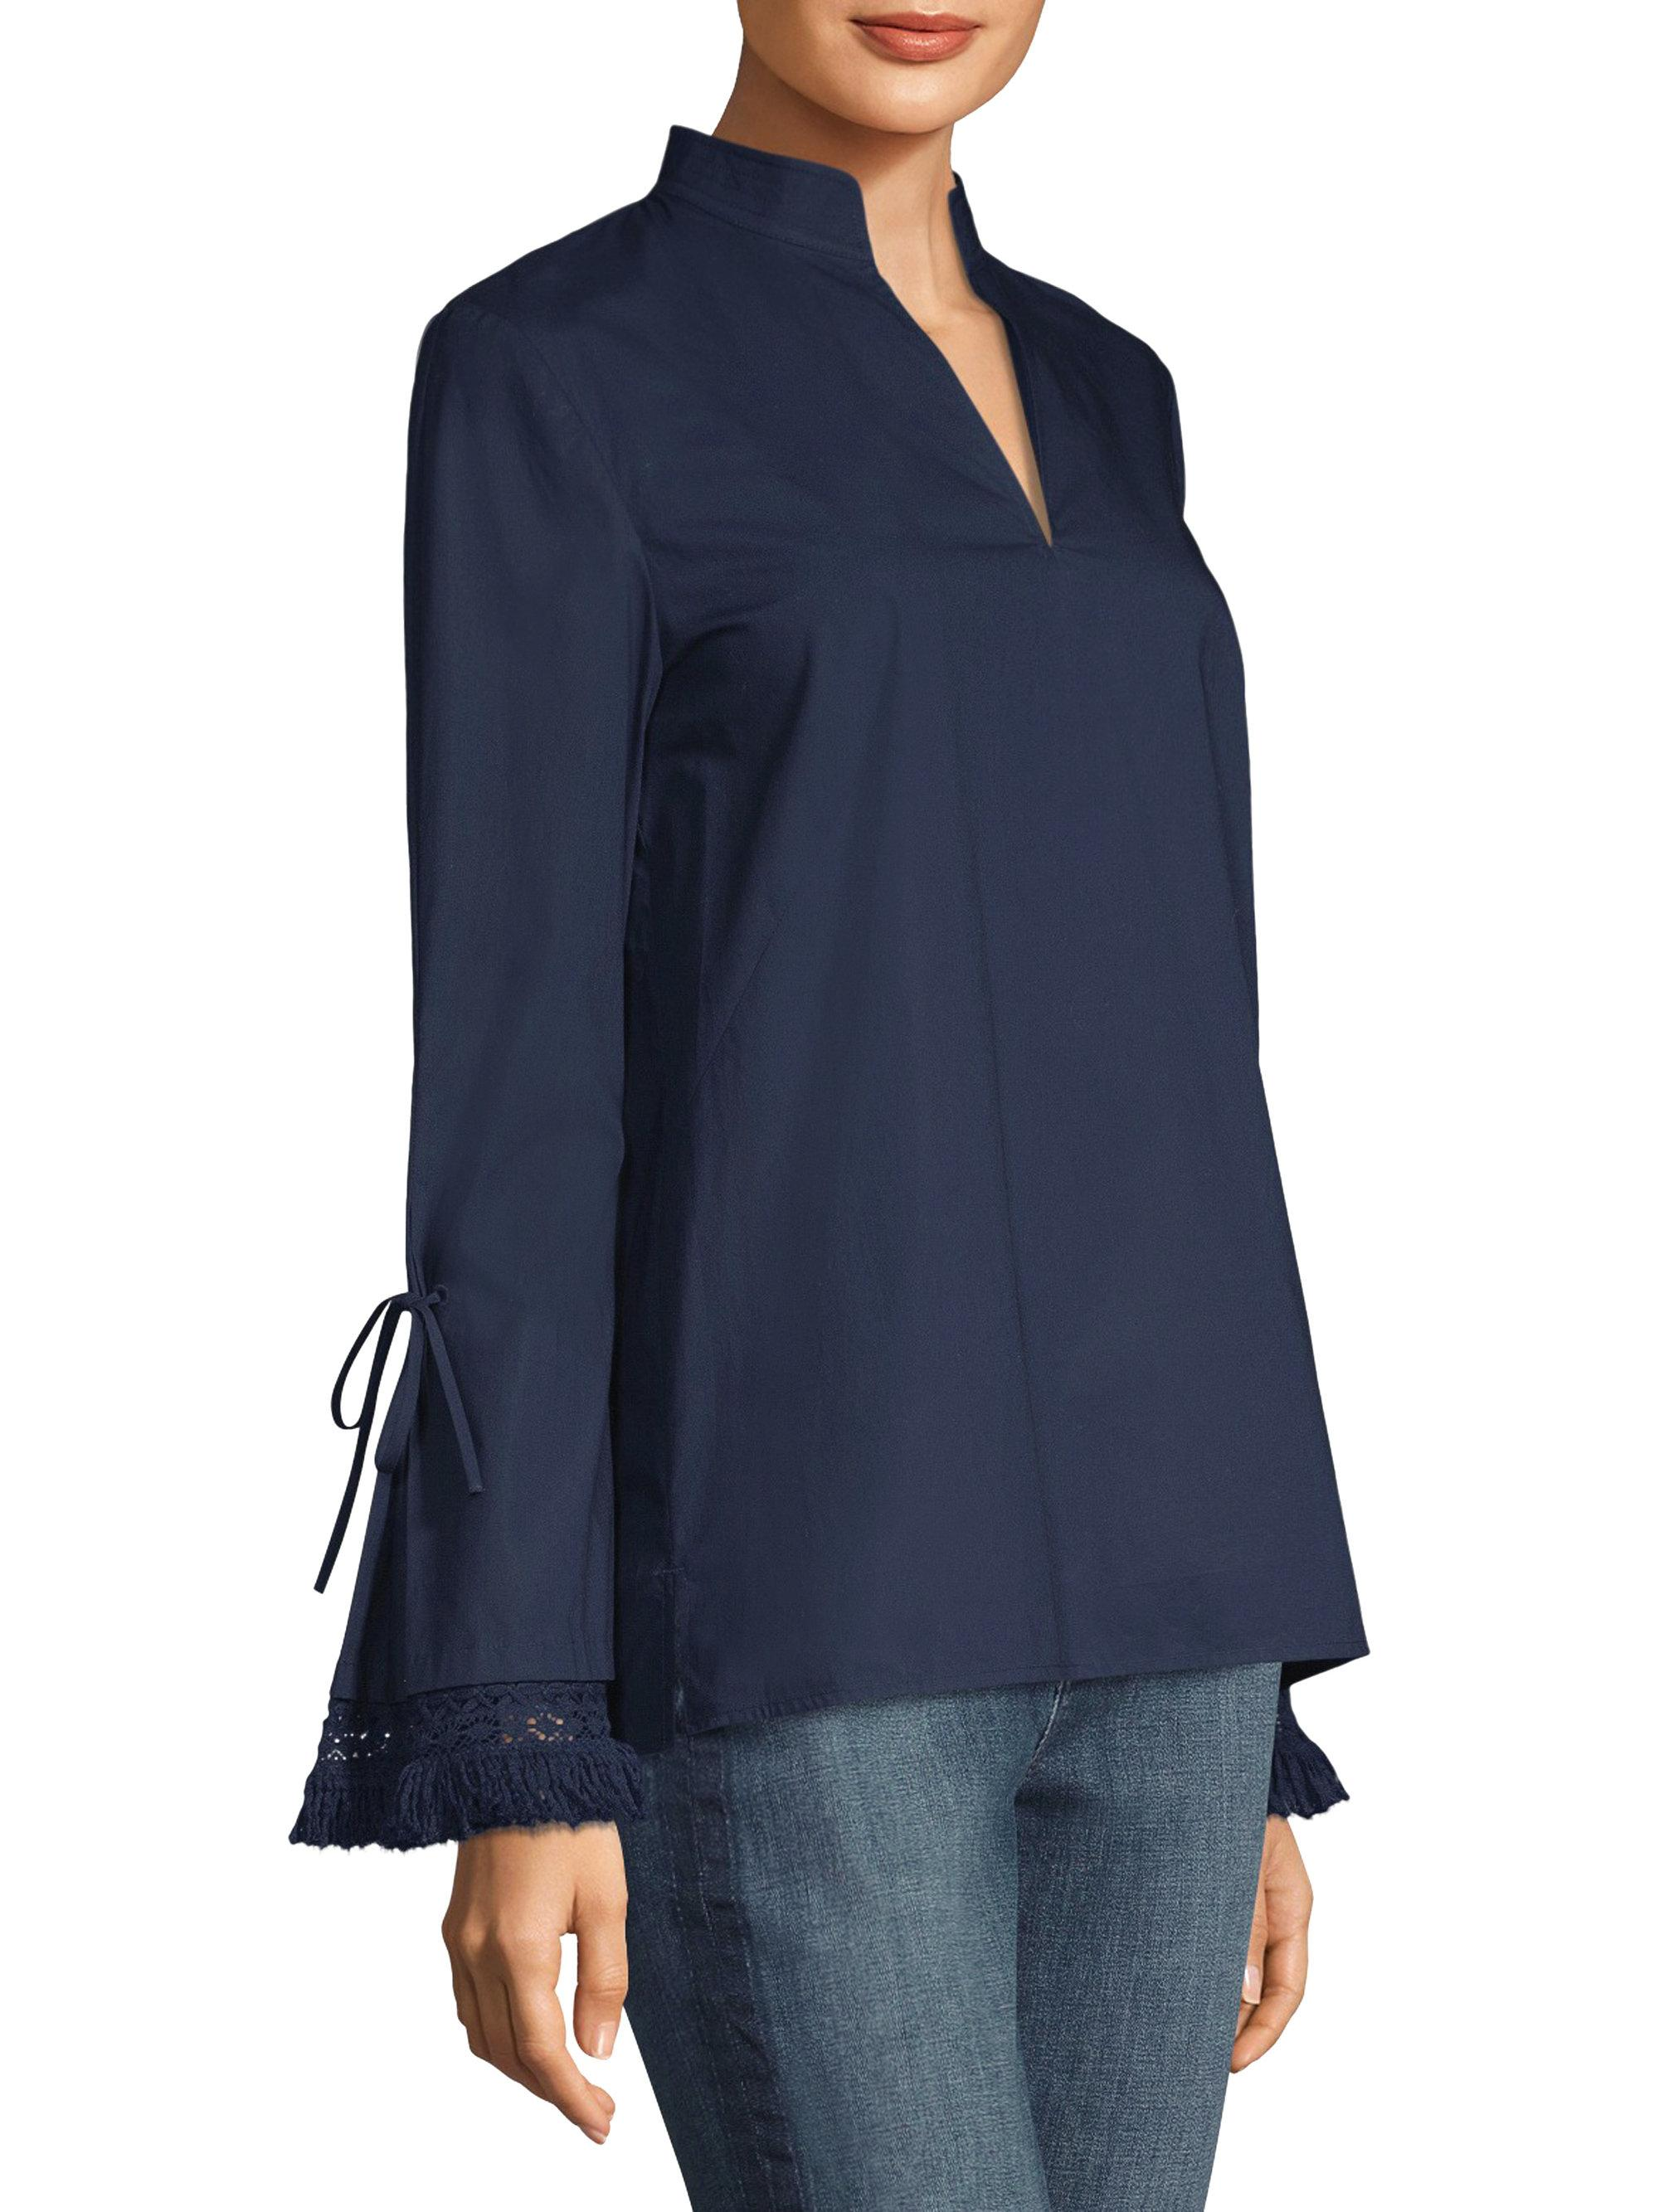 Sophie cotton top Tory Burch 2018 Cheap Sale Clearance 100% Guaranteed Outlet Shopping Online u2Xbm9mxm